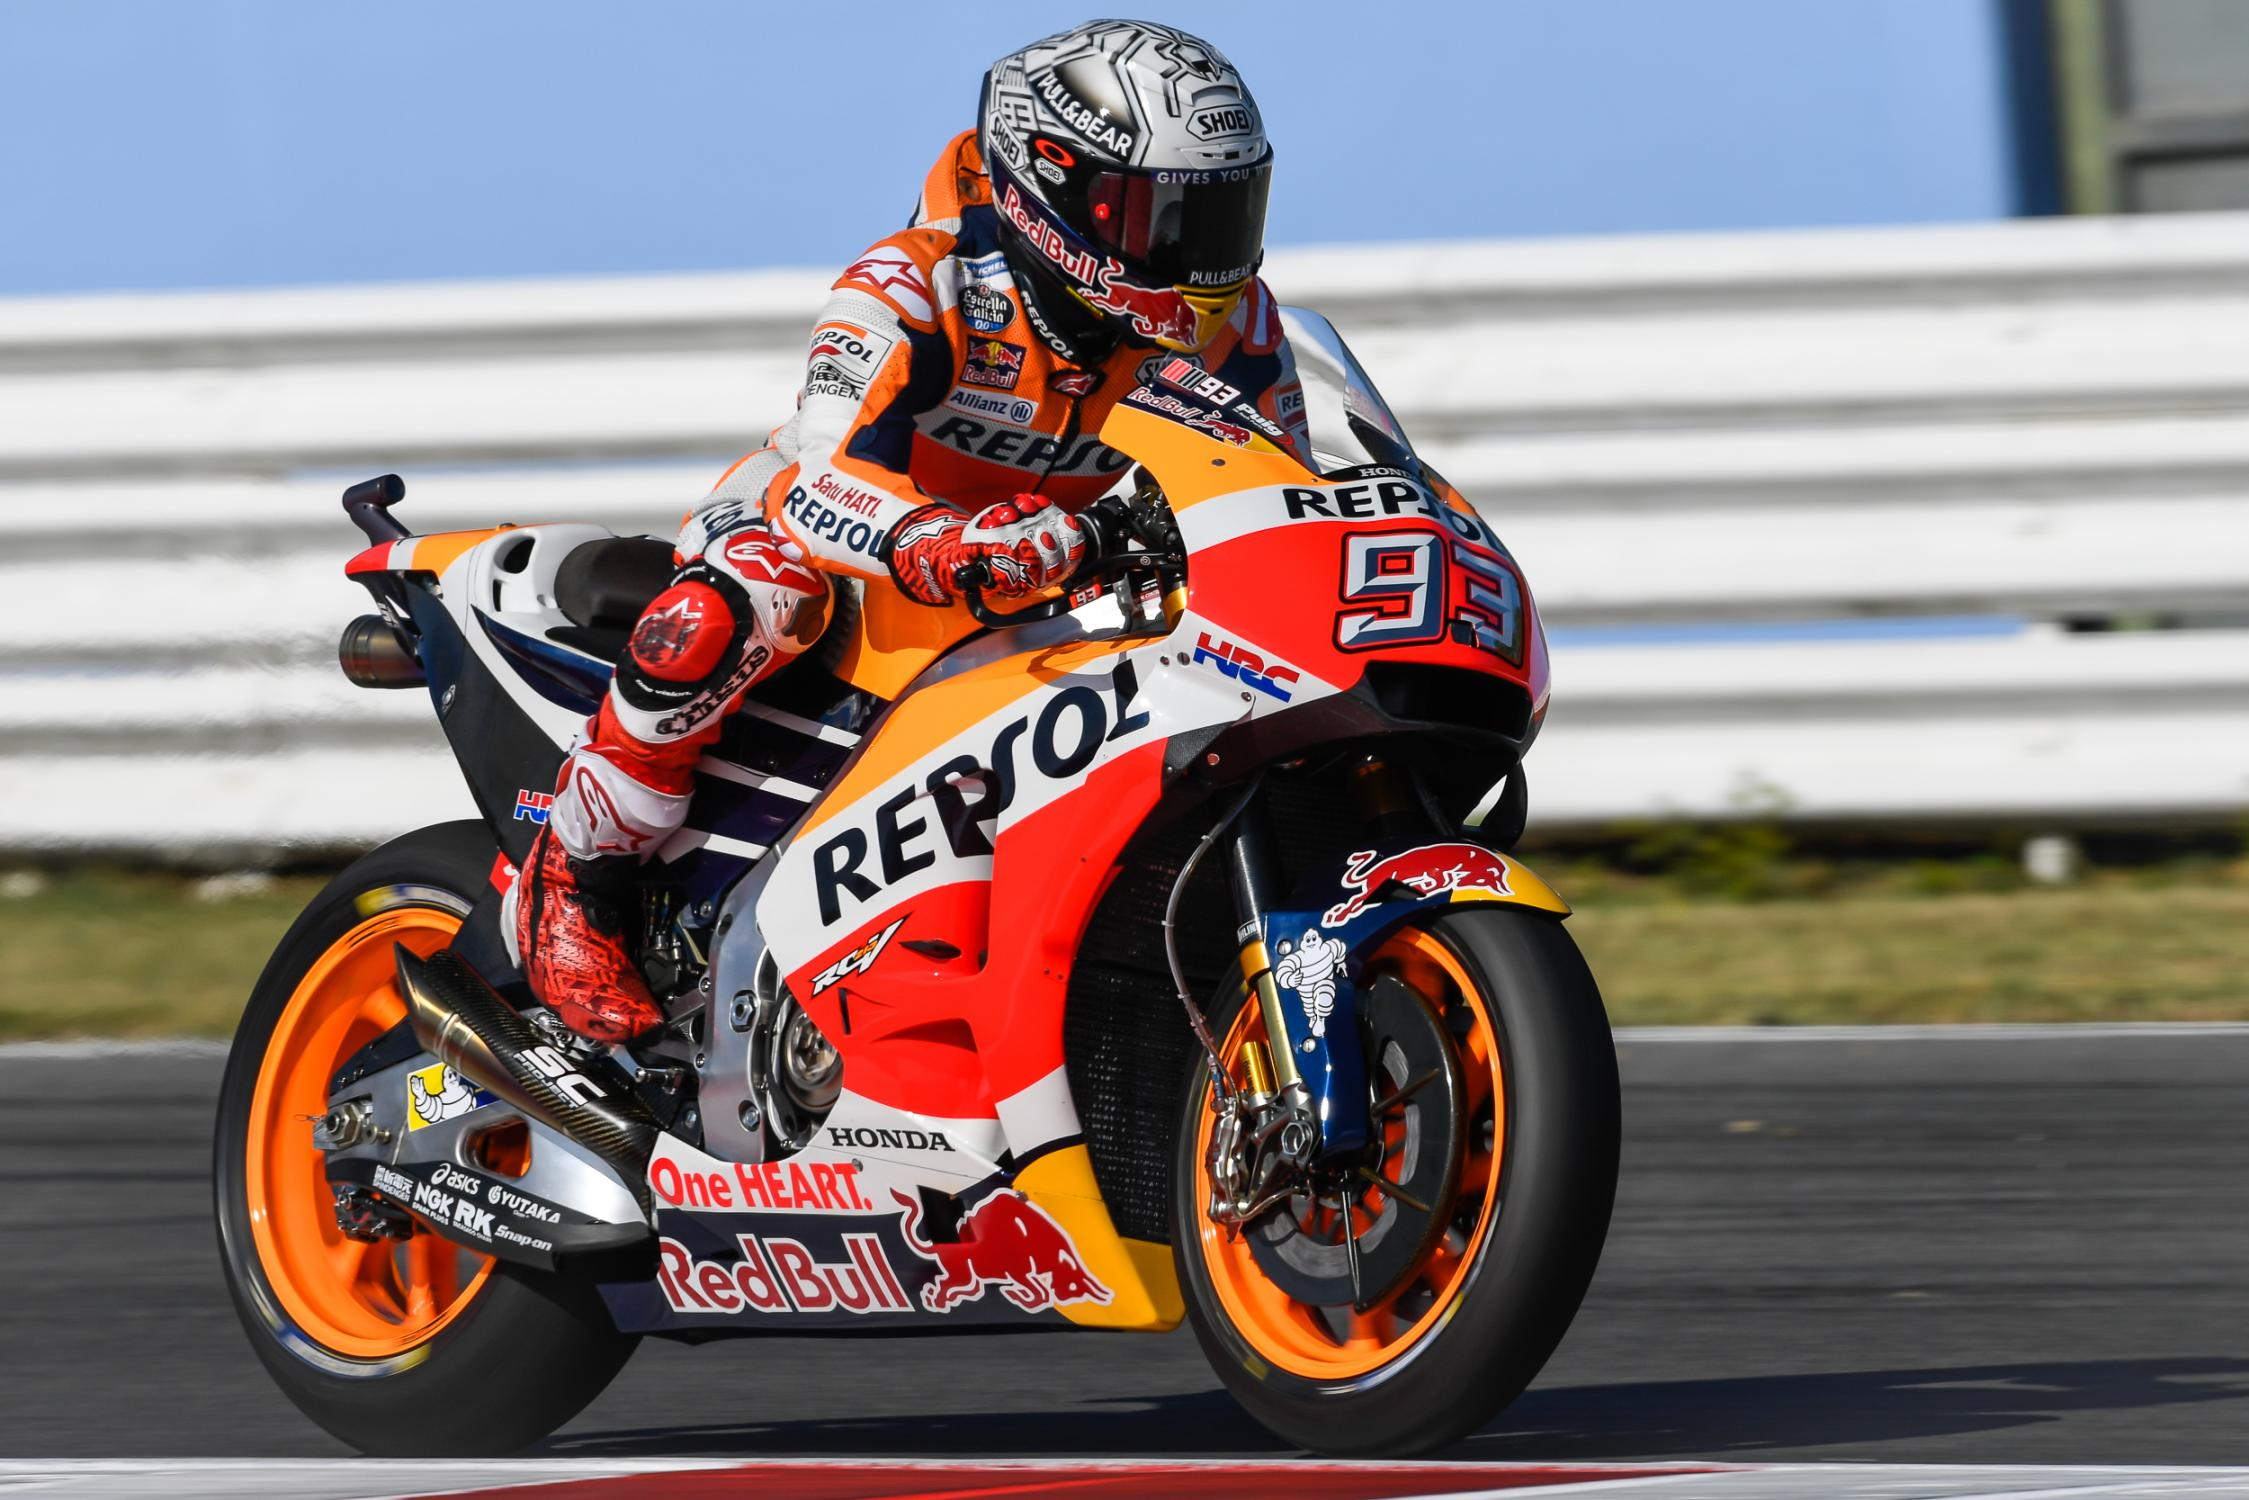 93-marc-marquez-esp_dsc1419.gallery_full_top_fullscreen.jpg